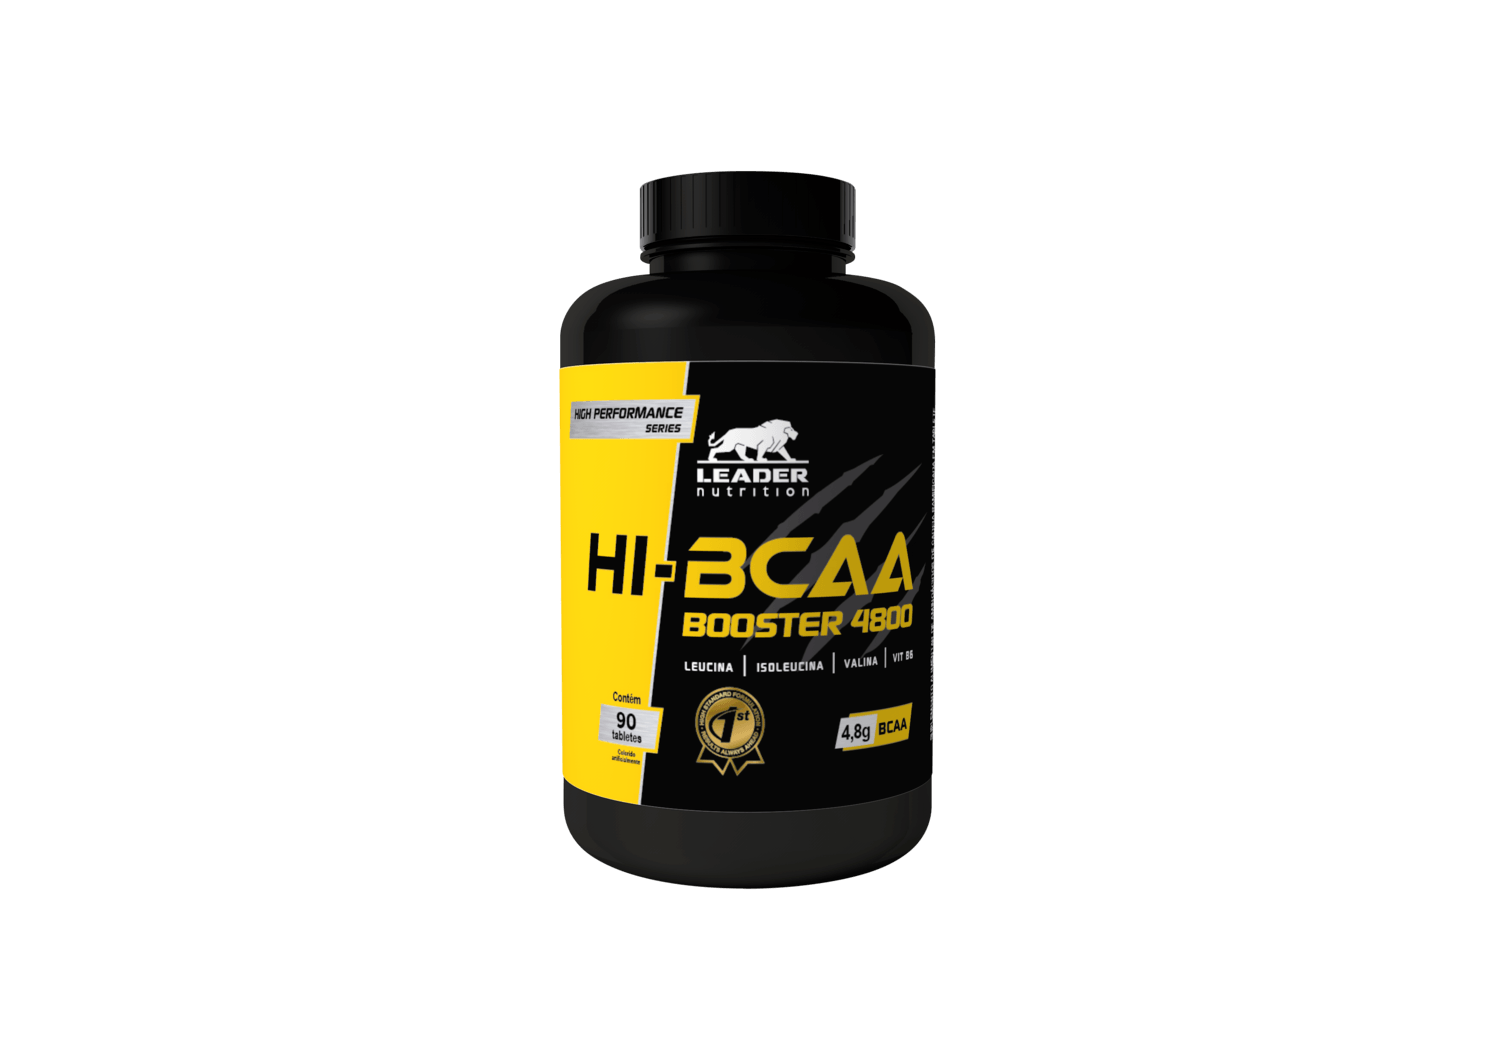 Hi-Bcaa Booster 4800 - 90Caps Leader Nutrition